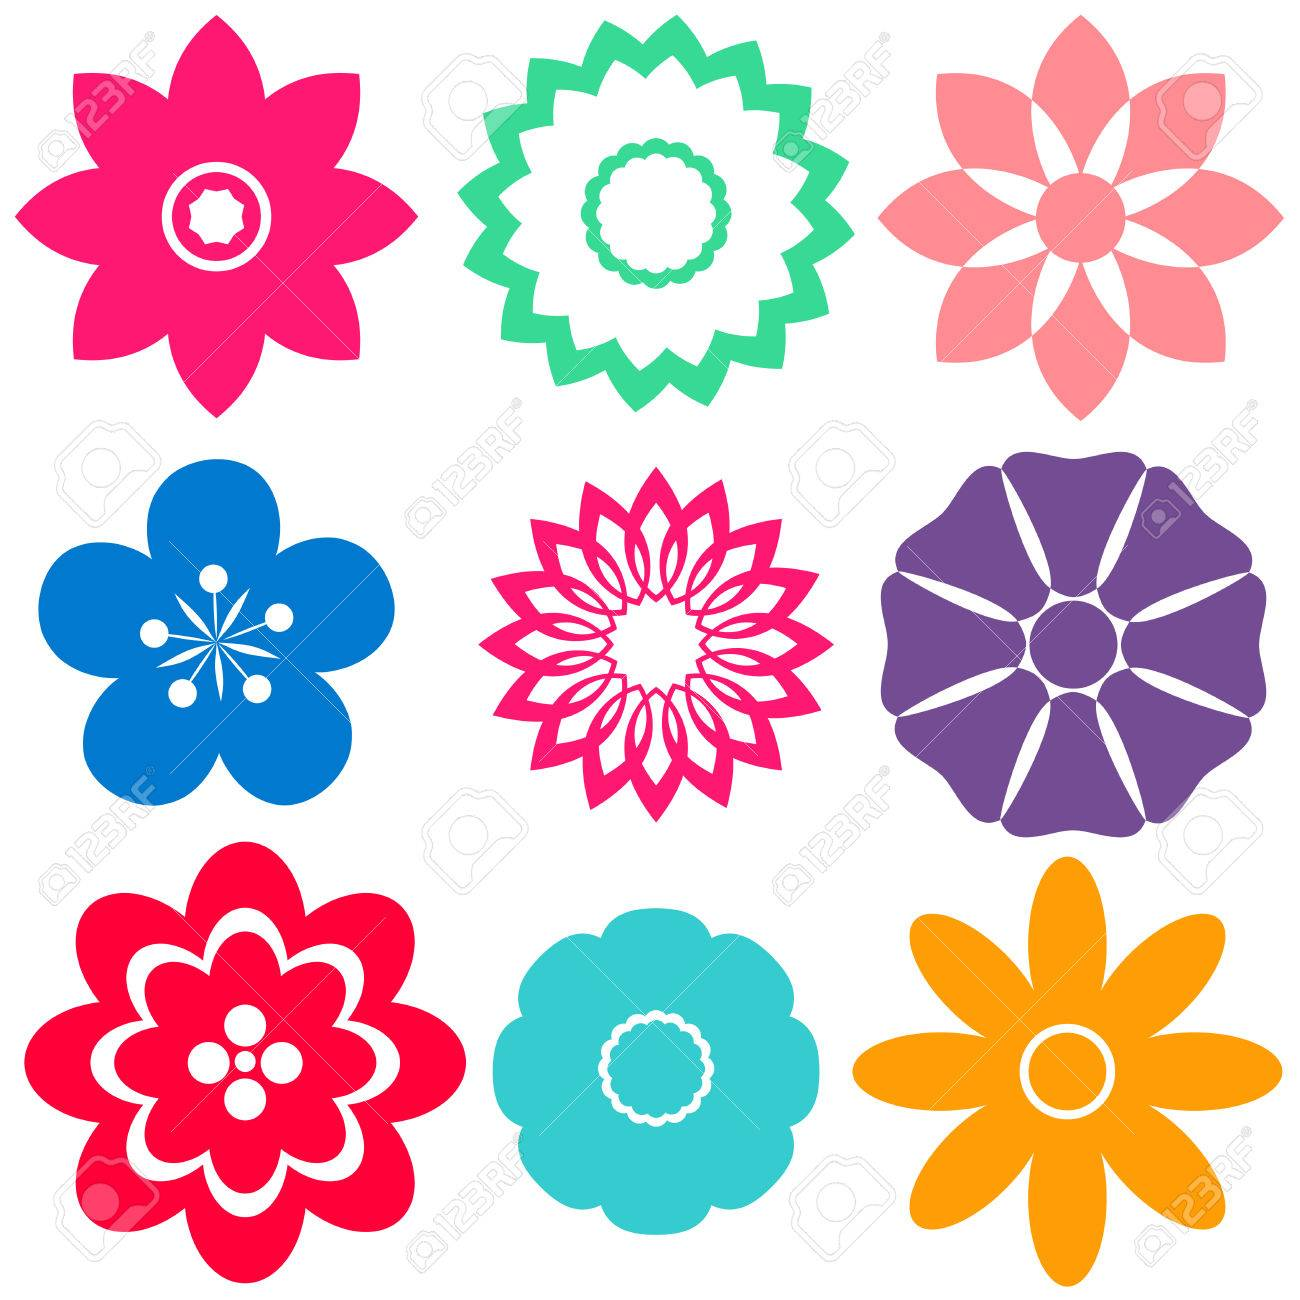 Colorful Floral Templates On A White Background Royalty Free ...